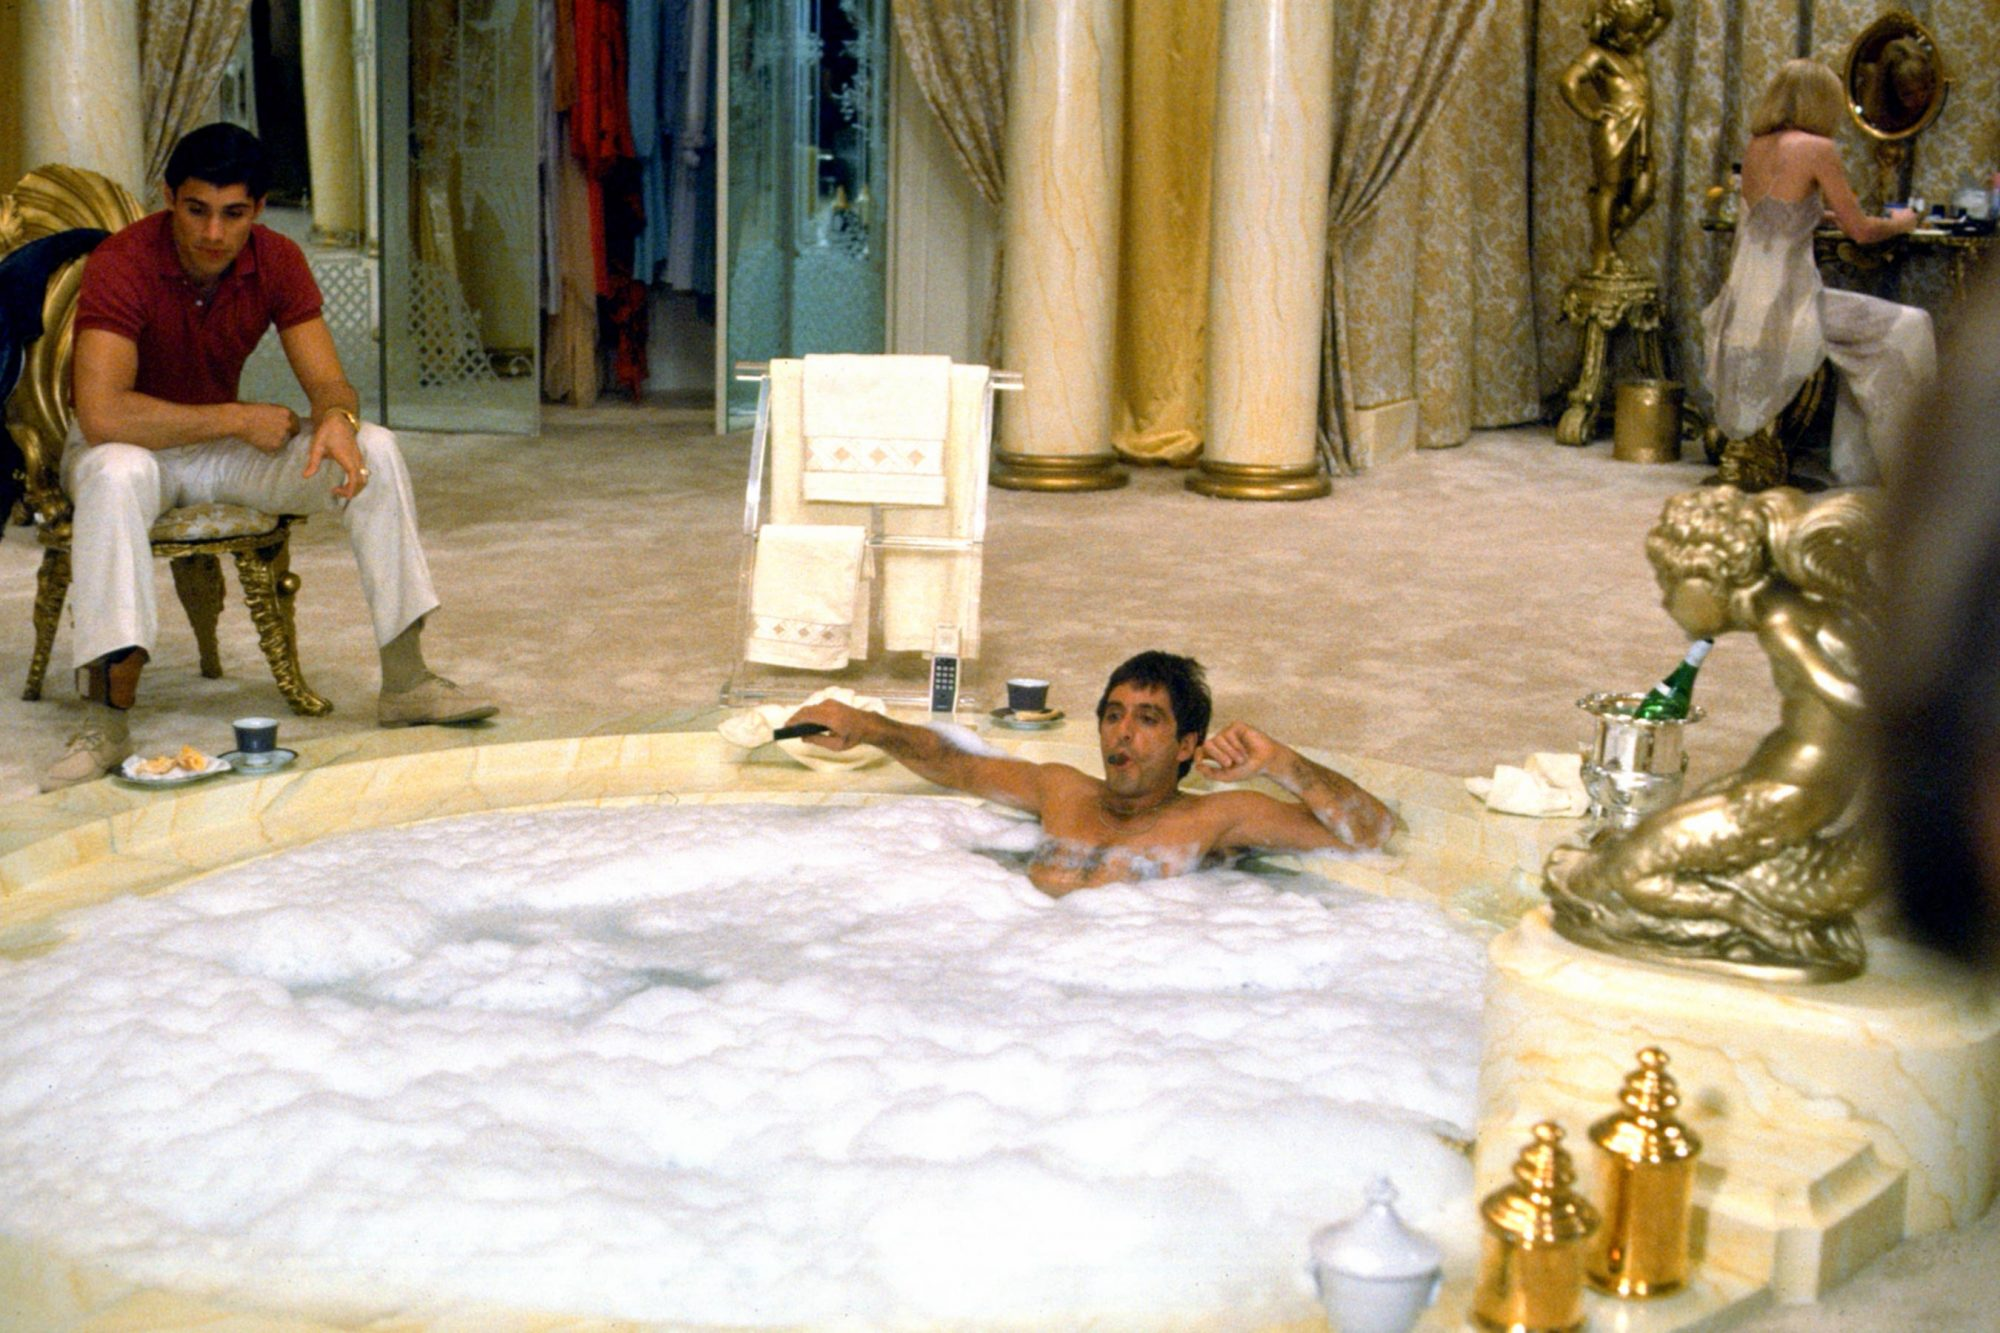 SCARFACE, Steven Bauer, Al Pacino, Michelle Pfeiffer, 1983, (c) Universal/courtesy Everett Collectio